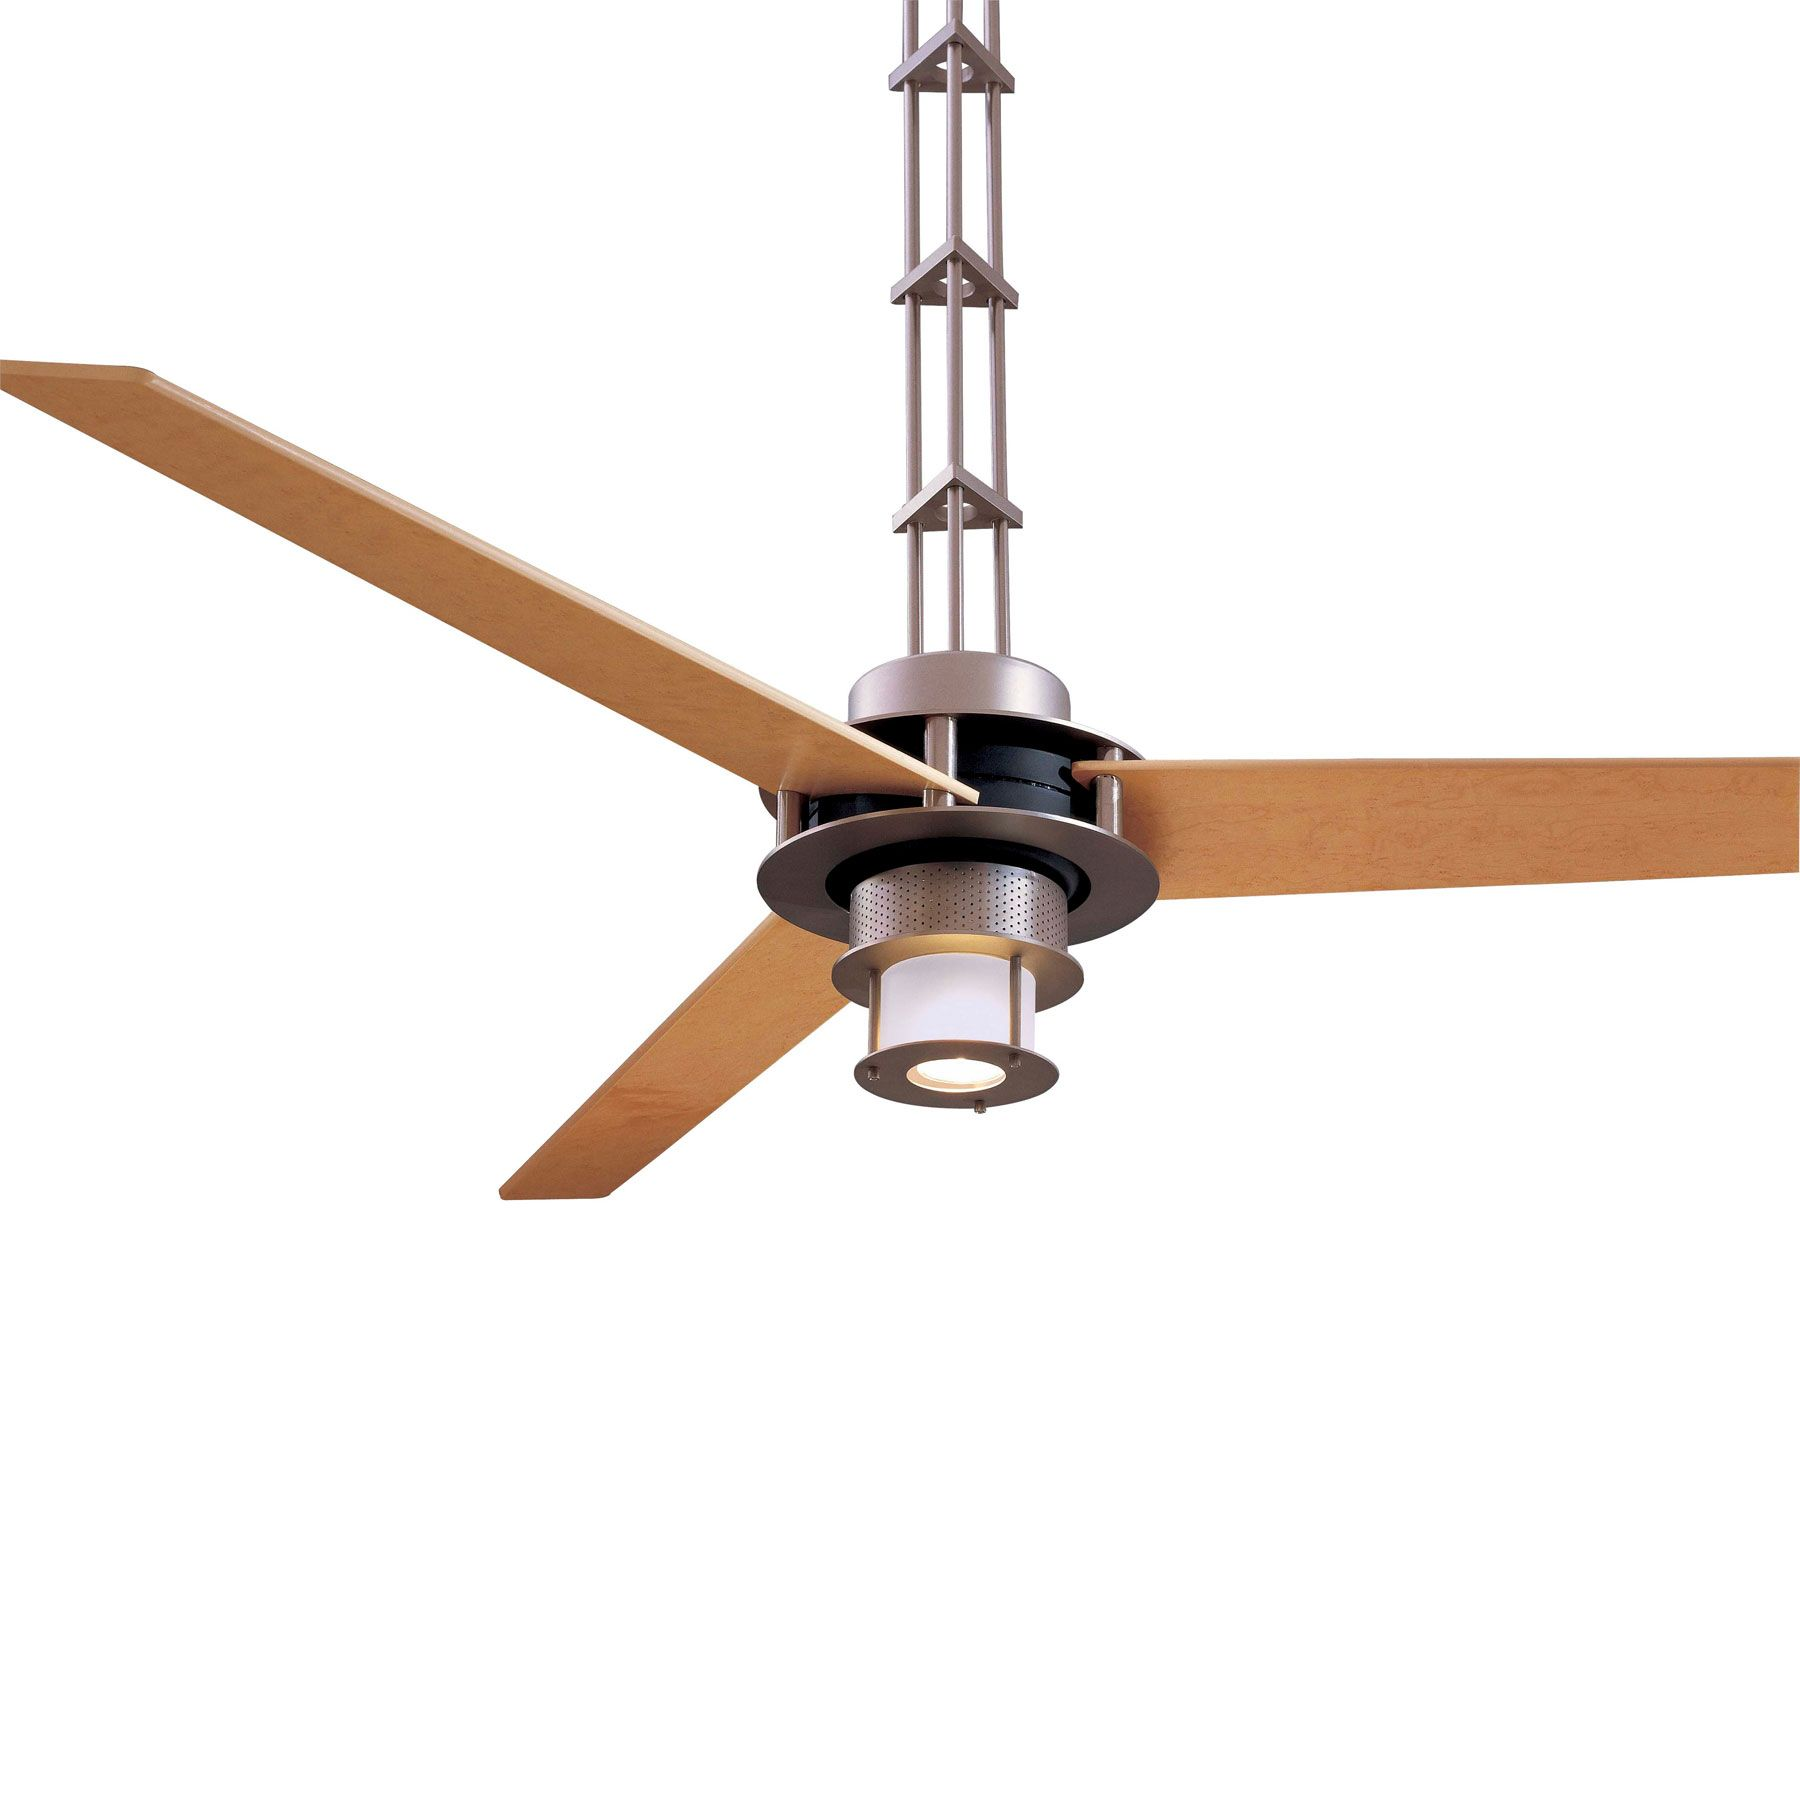 San Francisco Ceiling Fan with Light by Minka Aire